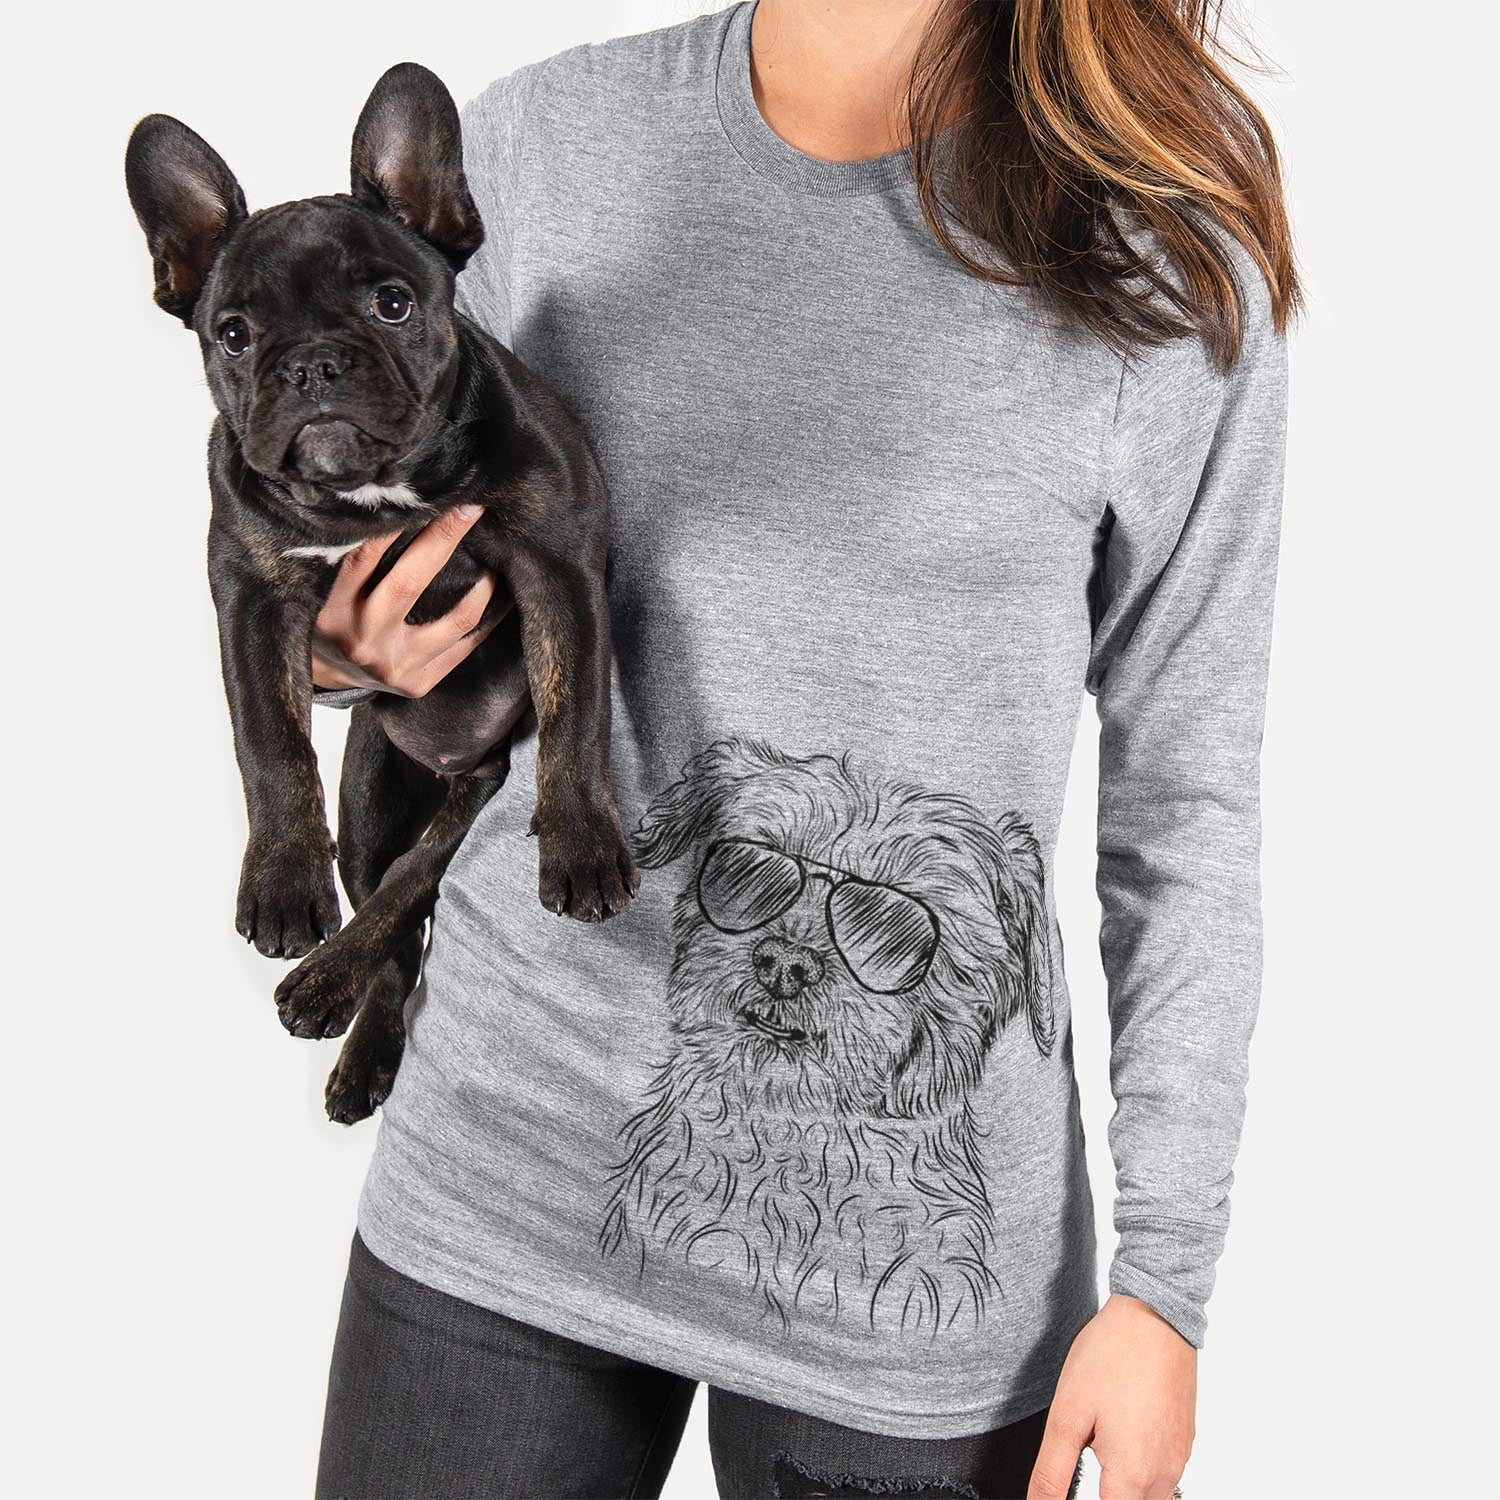 Roxie the Schnauzer Shih Tzu Mix - Long Sleeve Crewneck